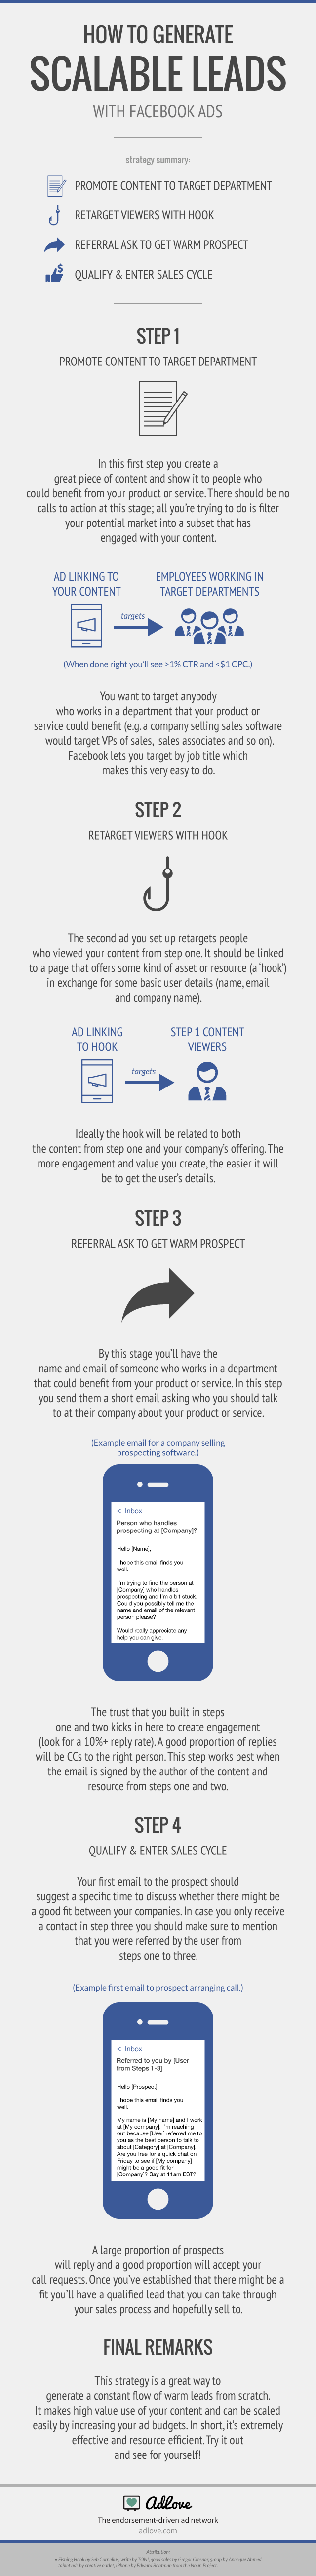 How to generate scalable leads with Facebook ads infographic